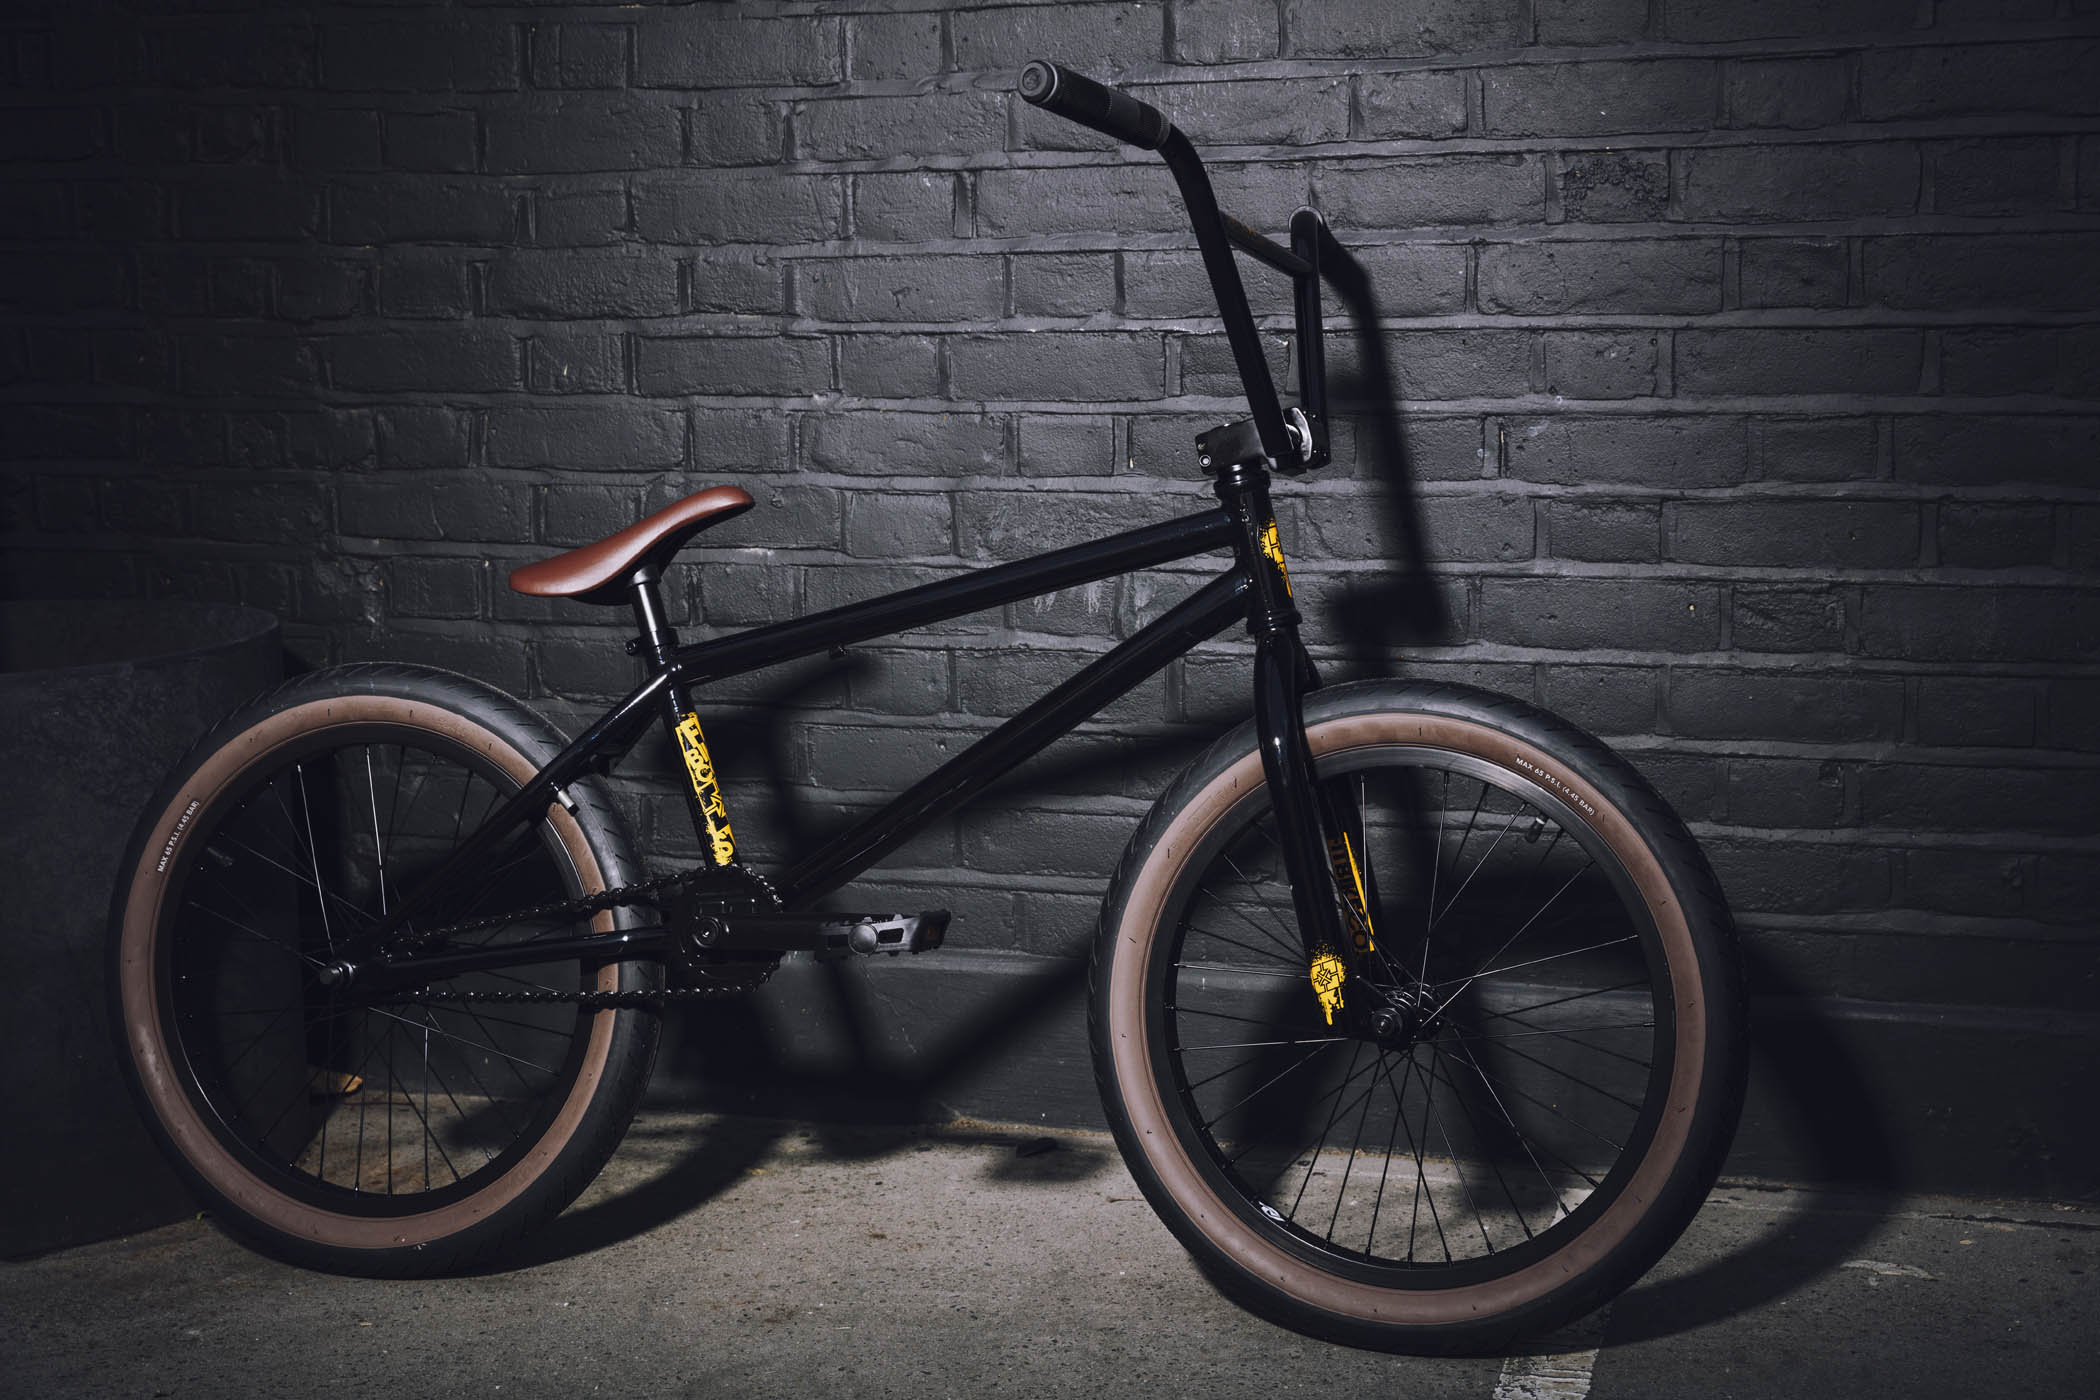 FITBIKECO STR 2018 – REVIEW